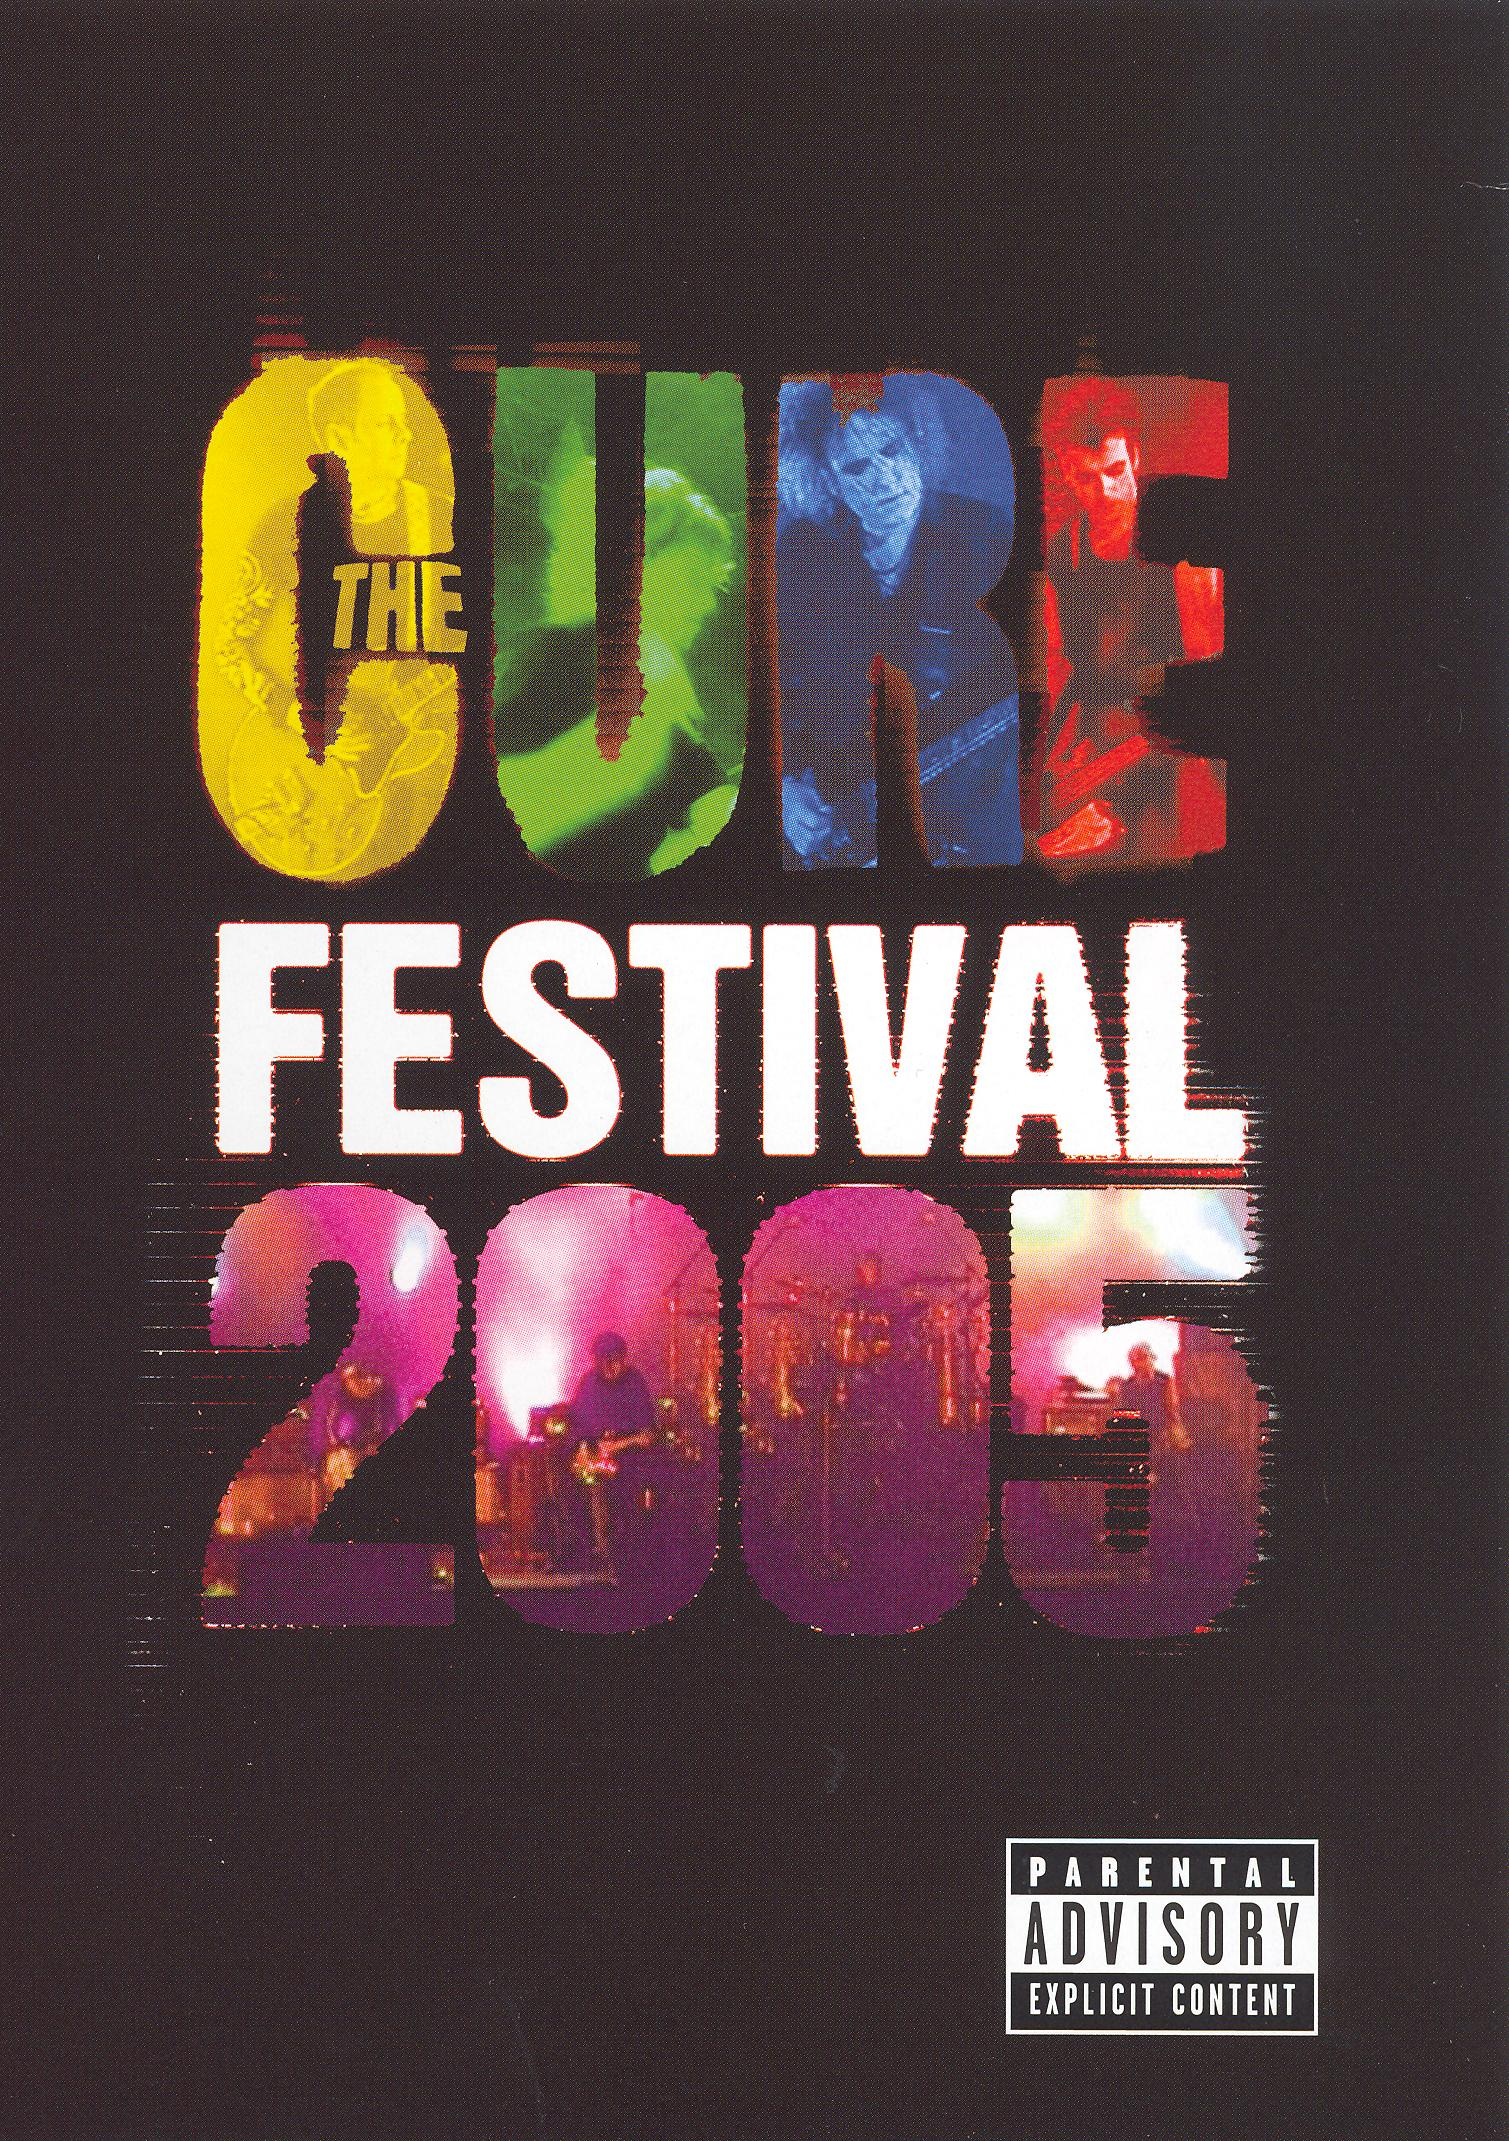 The Cure: Festival 2005